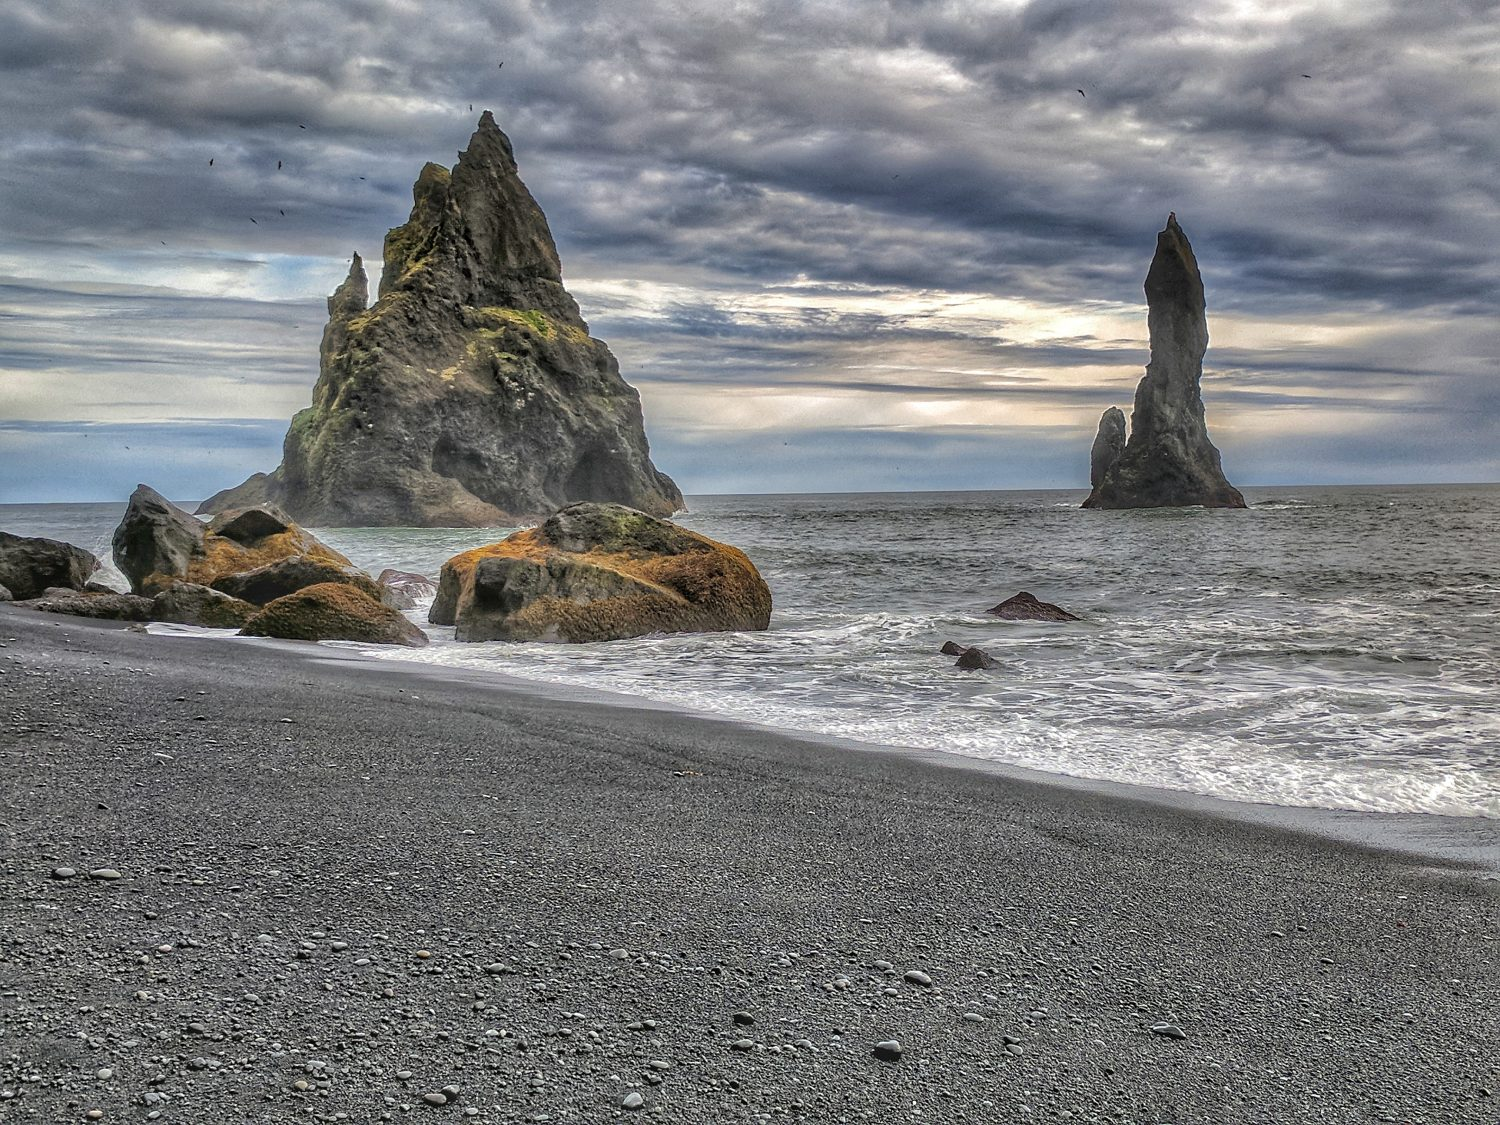 10 top reasons to visit Iceland. Reynisfjara, a world famous black sand beach in the South Coast, will capture your soul.